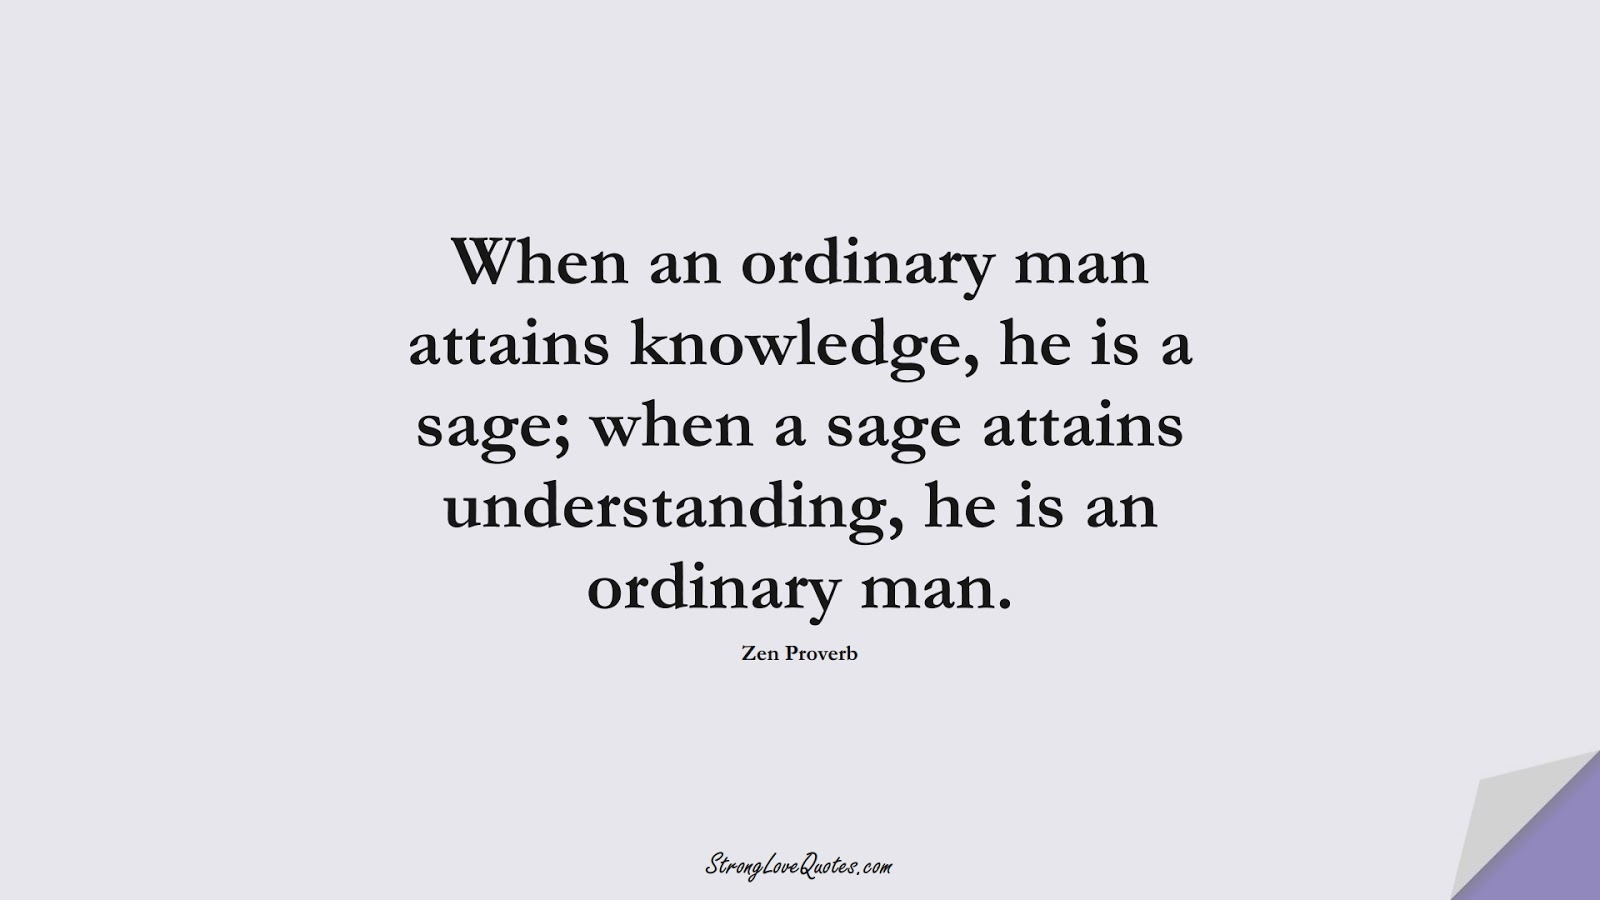 When an ordinary man attains knowledge, he is a sage; when a sage attains understanding, he is an ordinary man. (Zen Proverb);  #KnowledgeQuotes